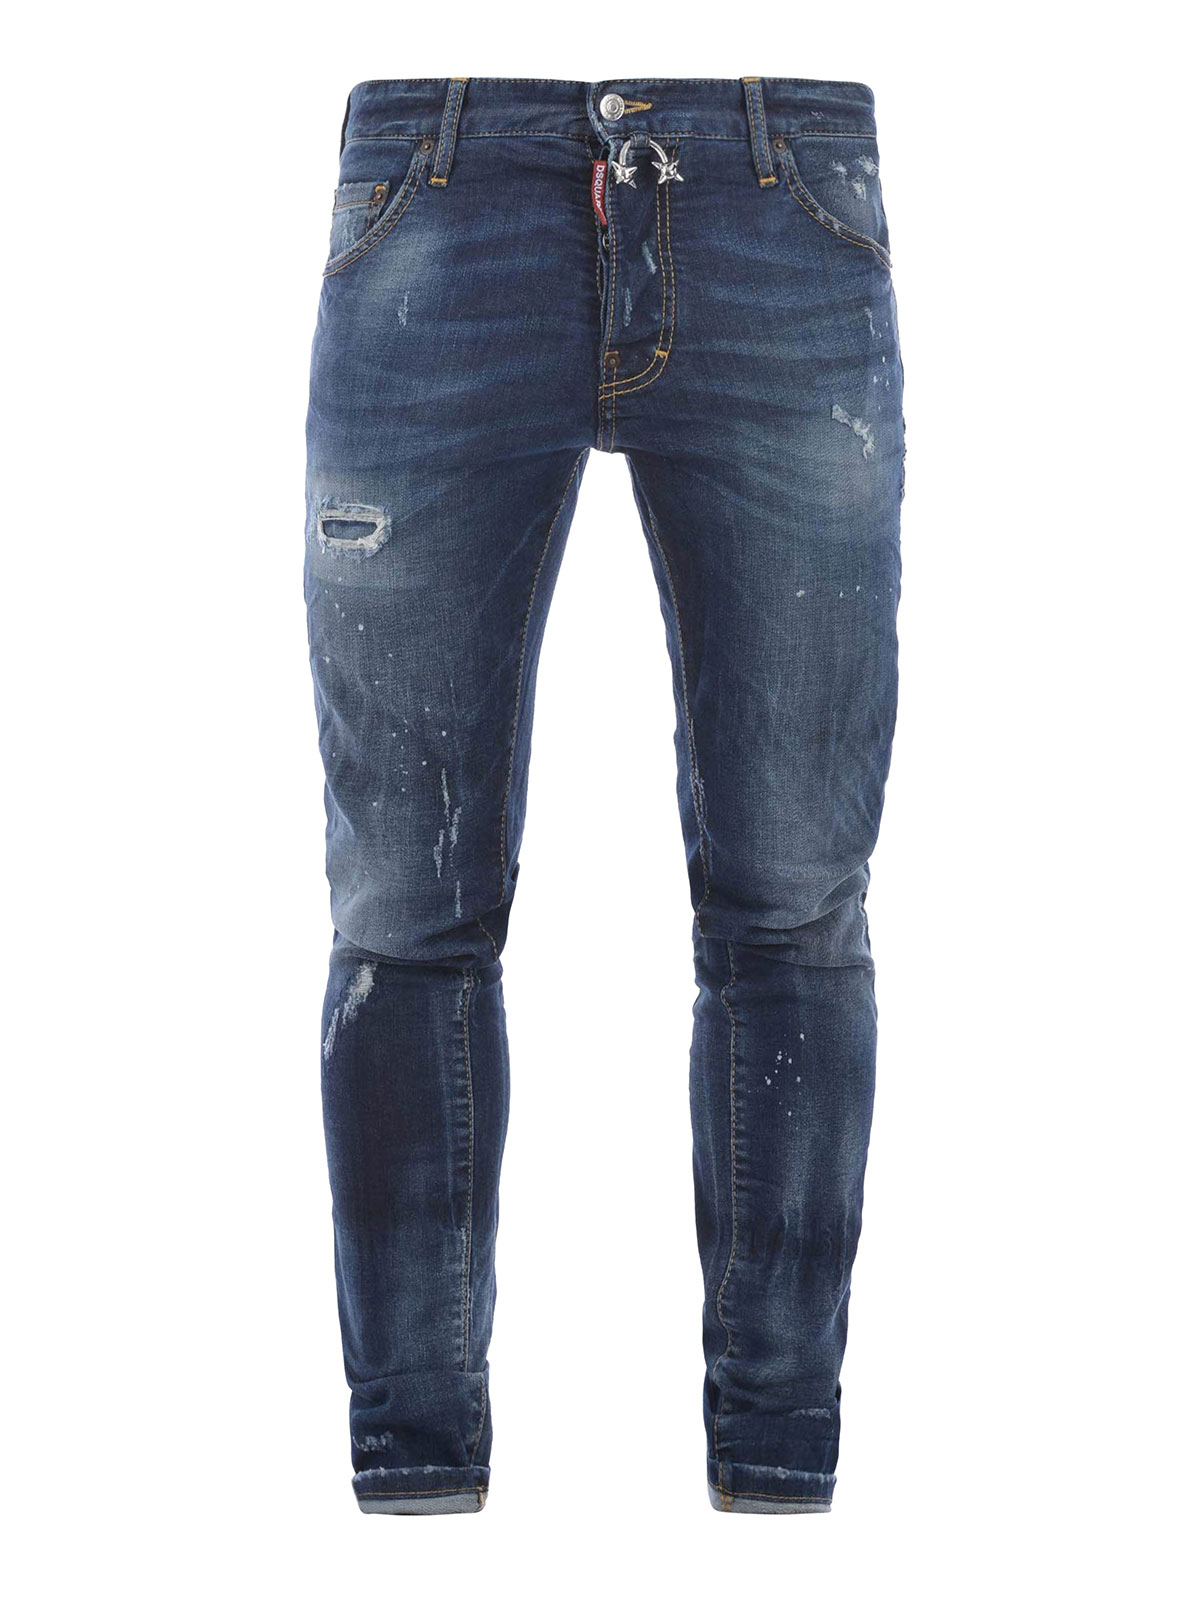 Skinny Jeans For Boys Size 10